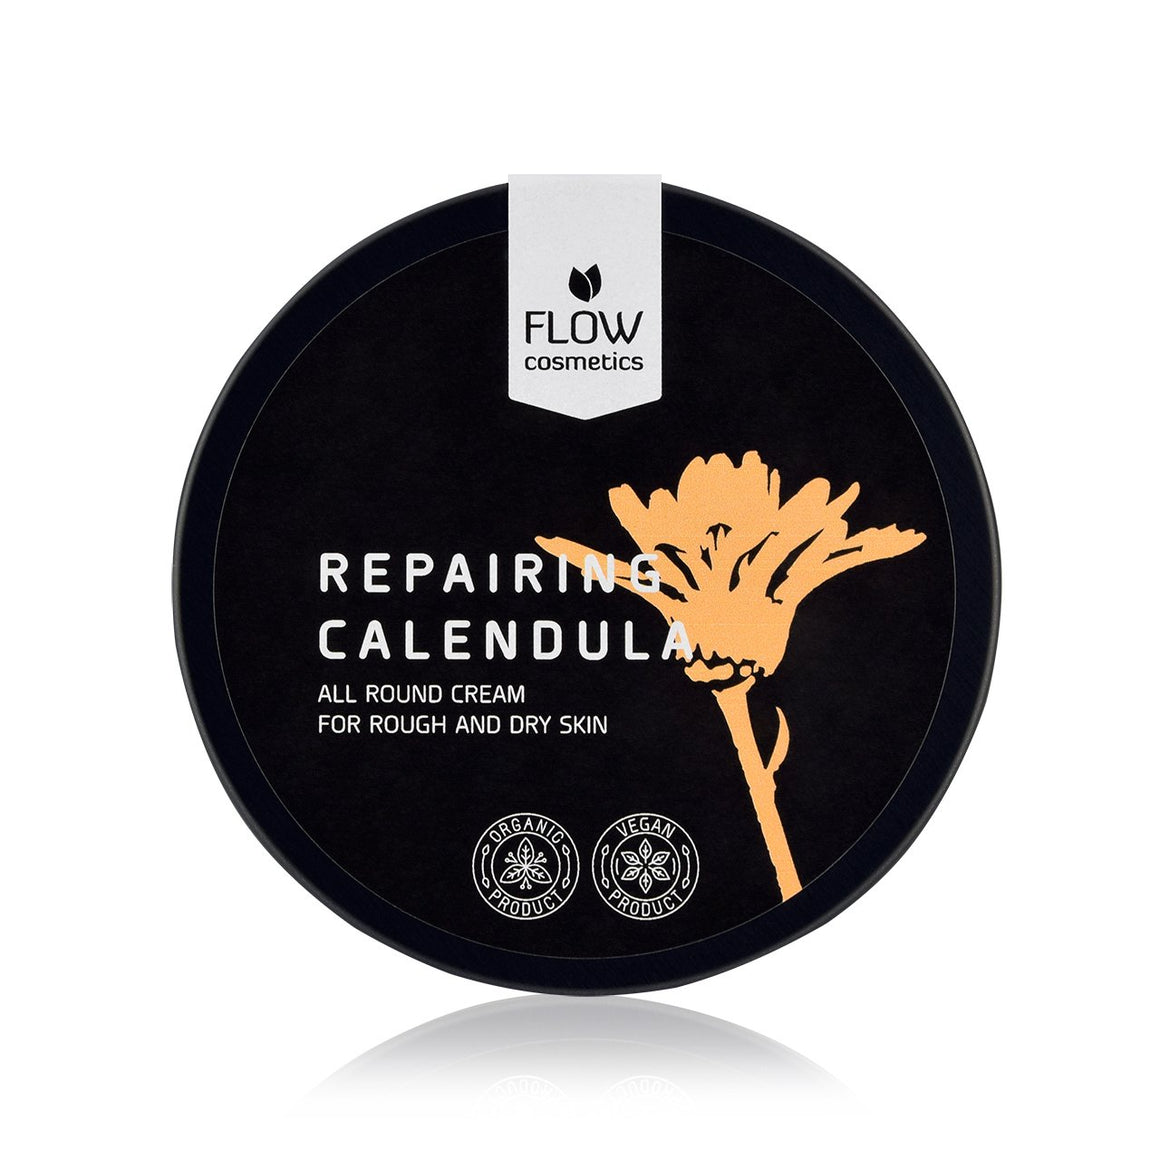 Flow Cosmetics Finland- Sheabutter & Calendula Repairing body butter 130ml 金盞花乳木果豐凝潤膚霜